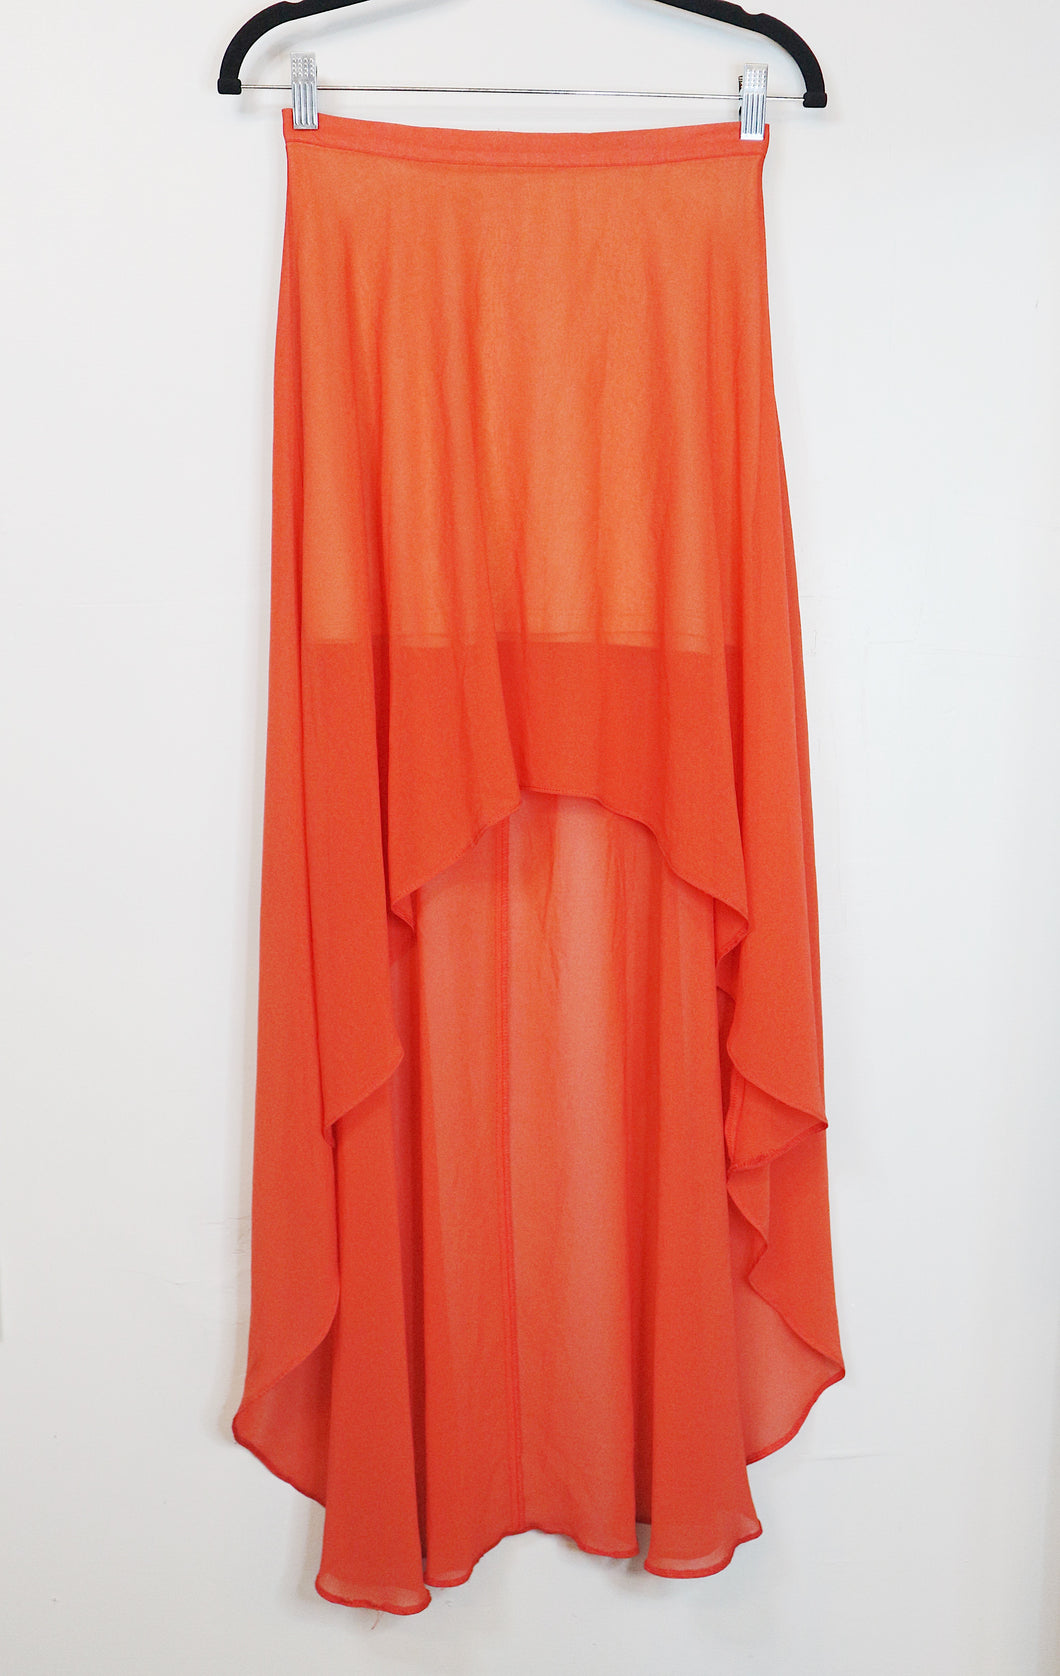 Topshop coral orange high low chiffon skirt